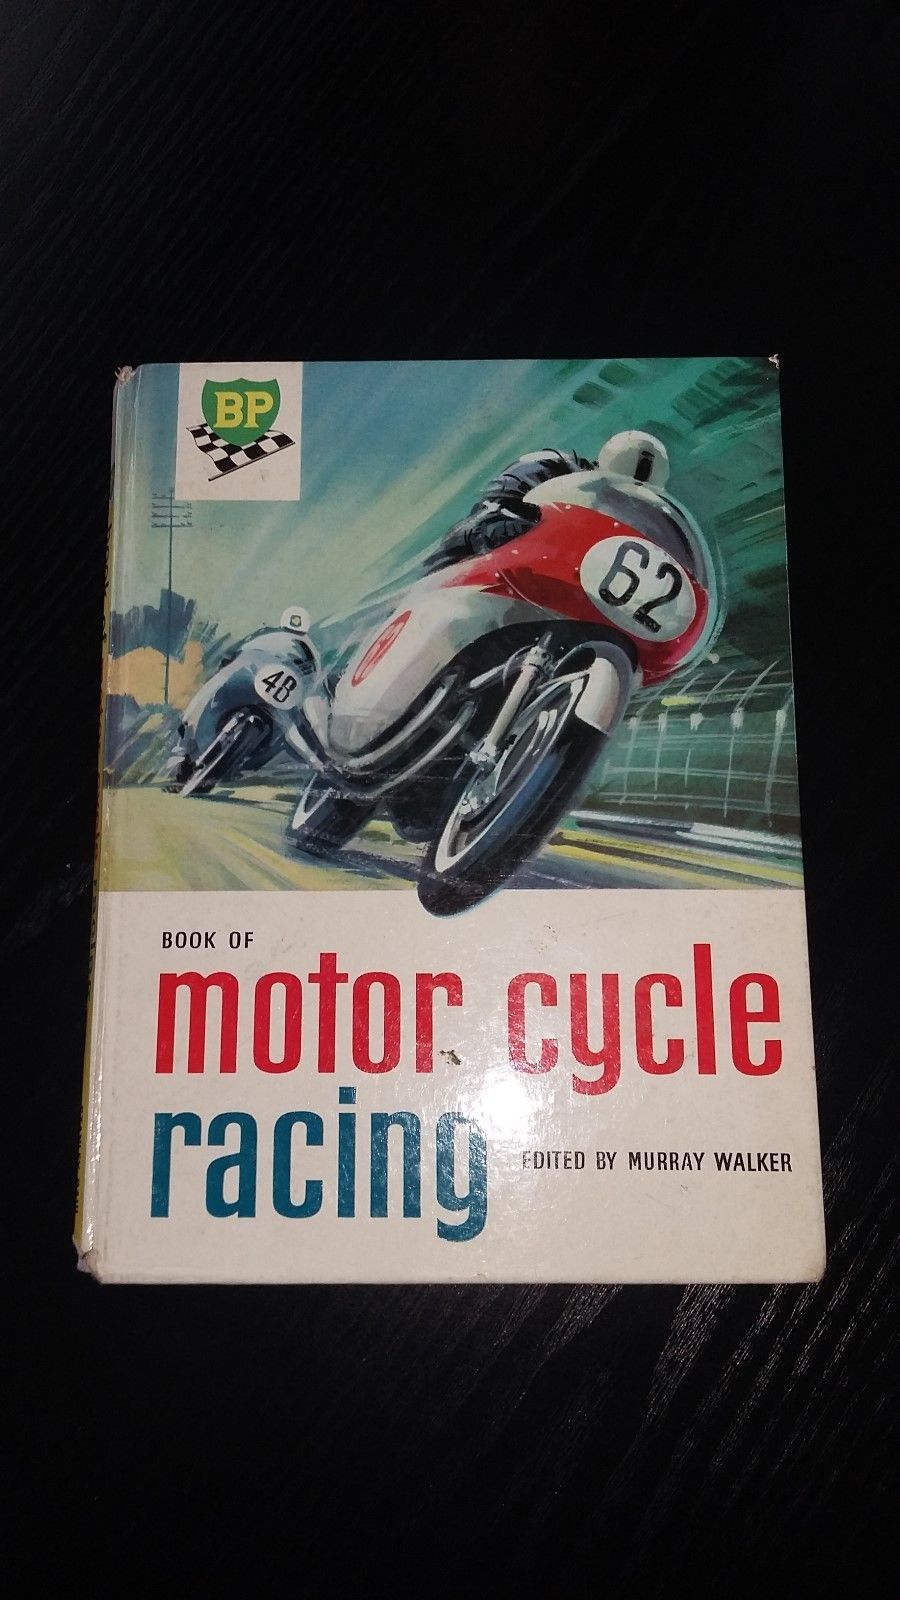 Motorcycle Racing -Murray Walker